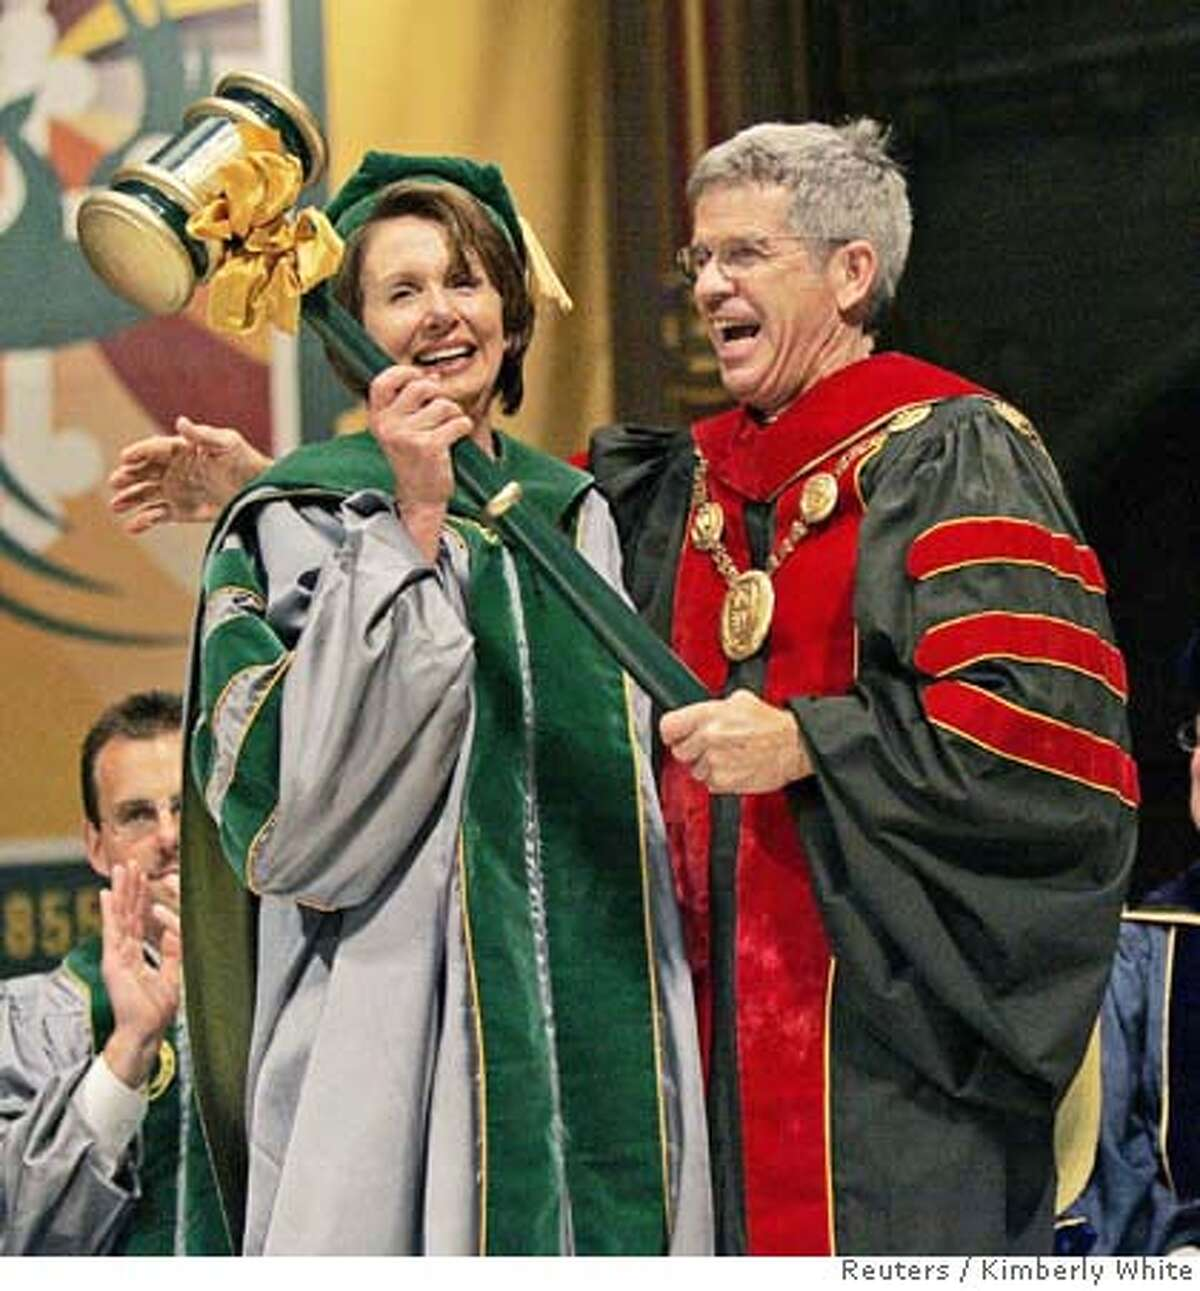 Speaker of the House Nancy Pelosi (D-CA) (L), is given an oversized gavel as a joke from Stephen Privett, president of the University of San Francisco in San Francisco, California, May 19, 2007. House Speaker Pelosi gave a brief speech to the graduating class of the McLaren College of Business. REUTERS/Kimberly White (UNITED STATES)